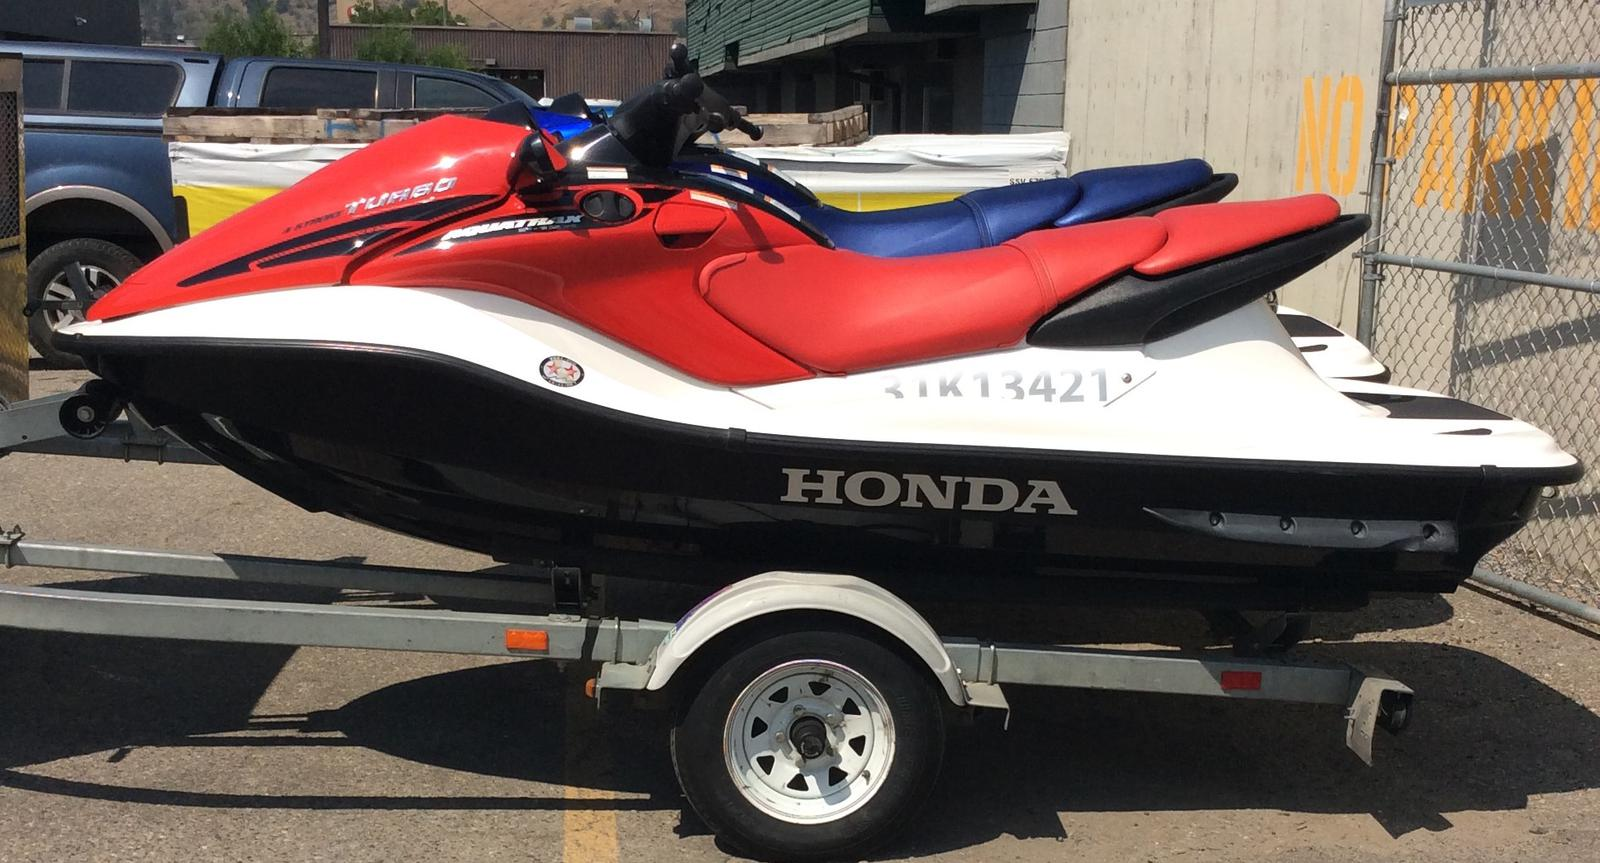 2006 HONDA AQUATRAX 4 STROKE TURBO for sale